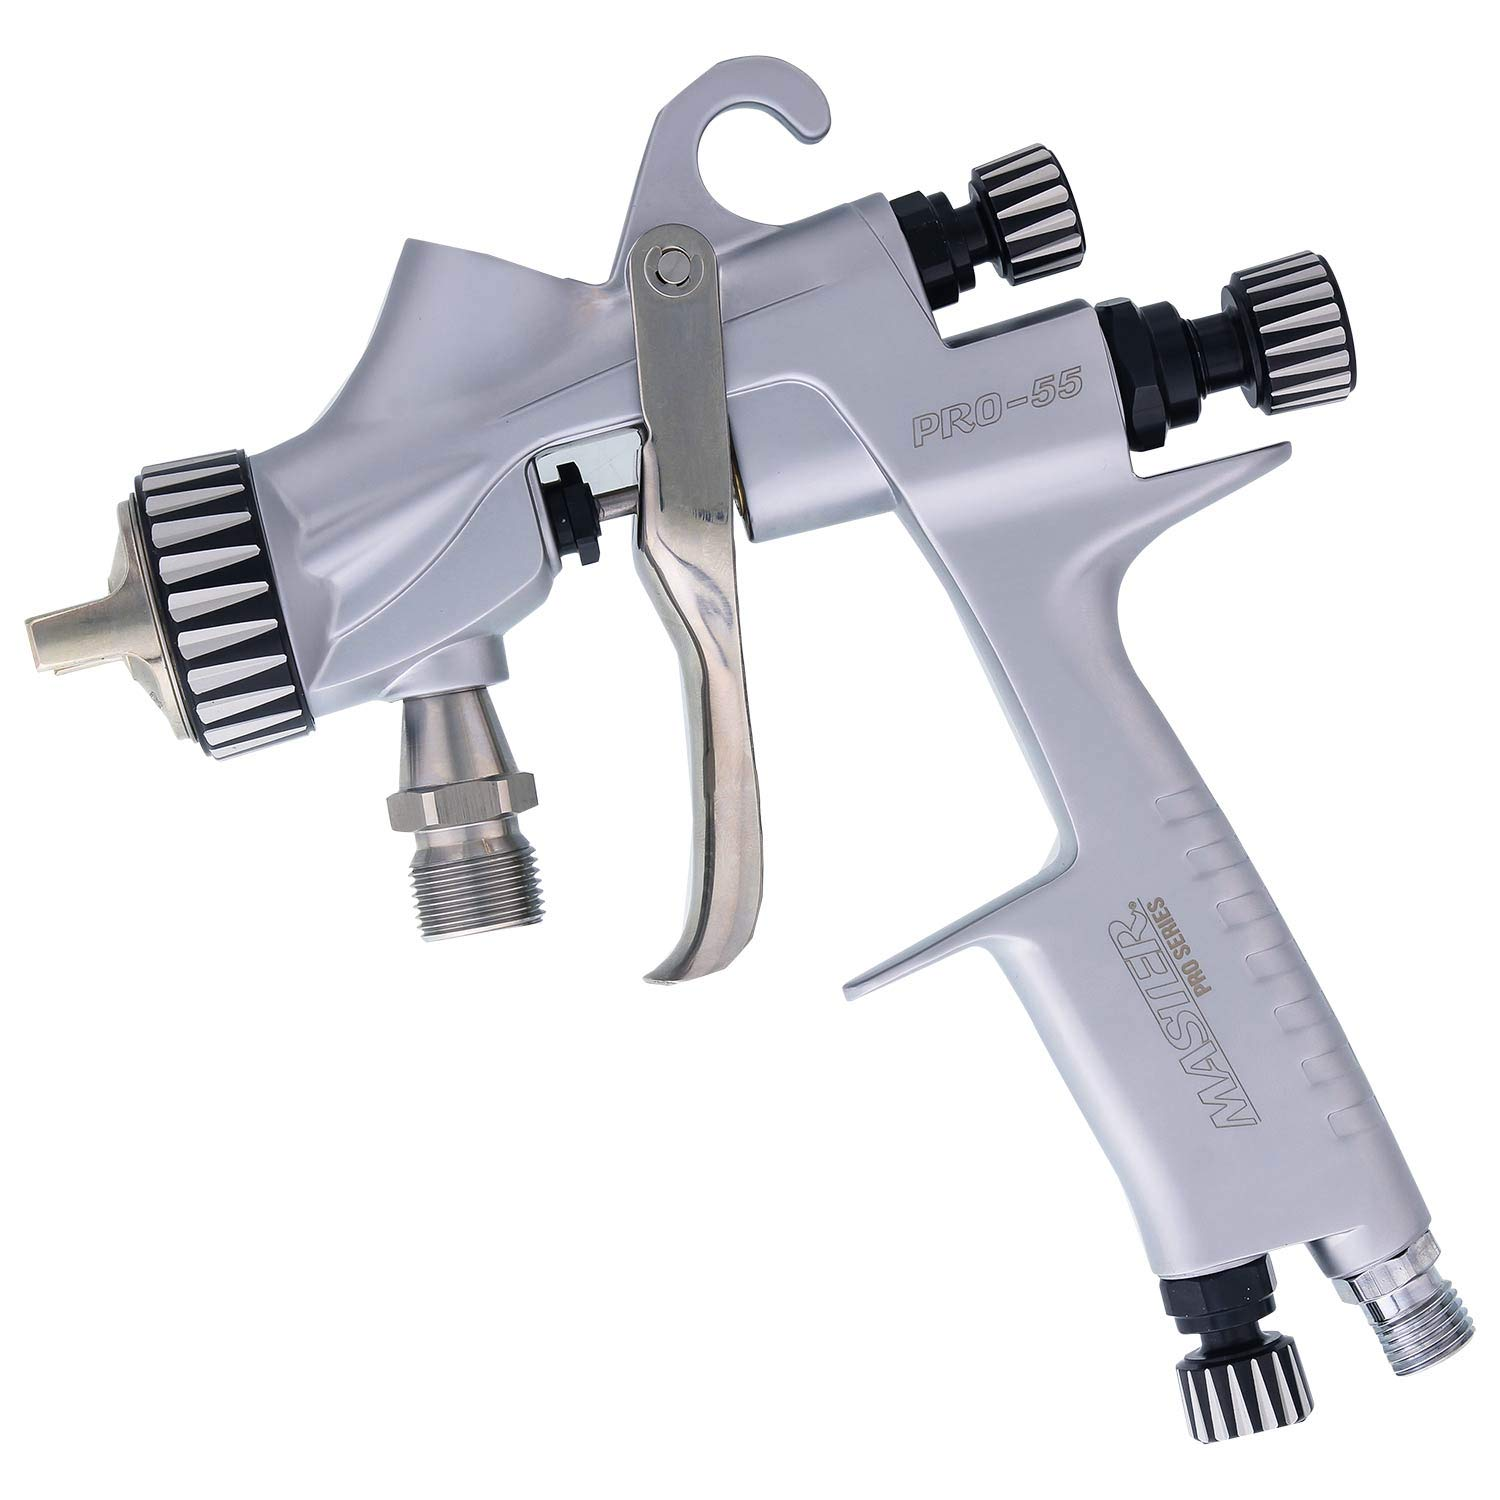 Master Pro 55 Series High Performance Pressure Feed Spray Gun with 1.2mm Tip - Ideal for Automotive Basecoats, Clearcoats - Advanced Atomization Technology